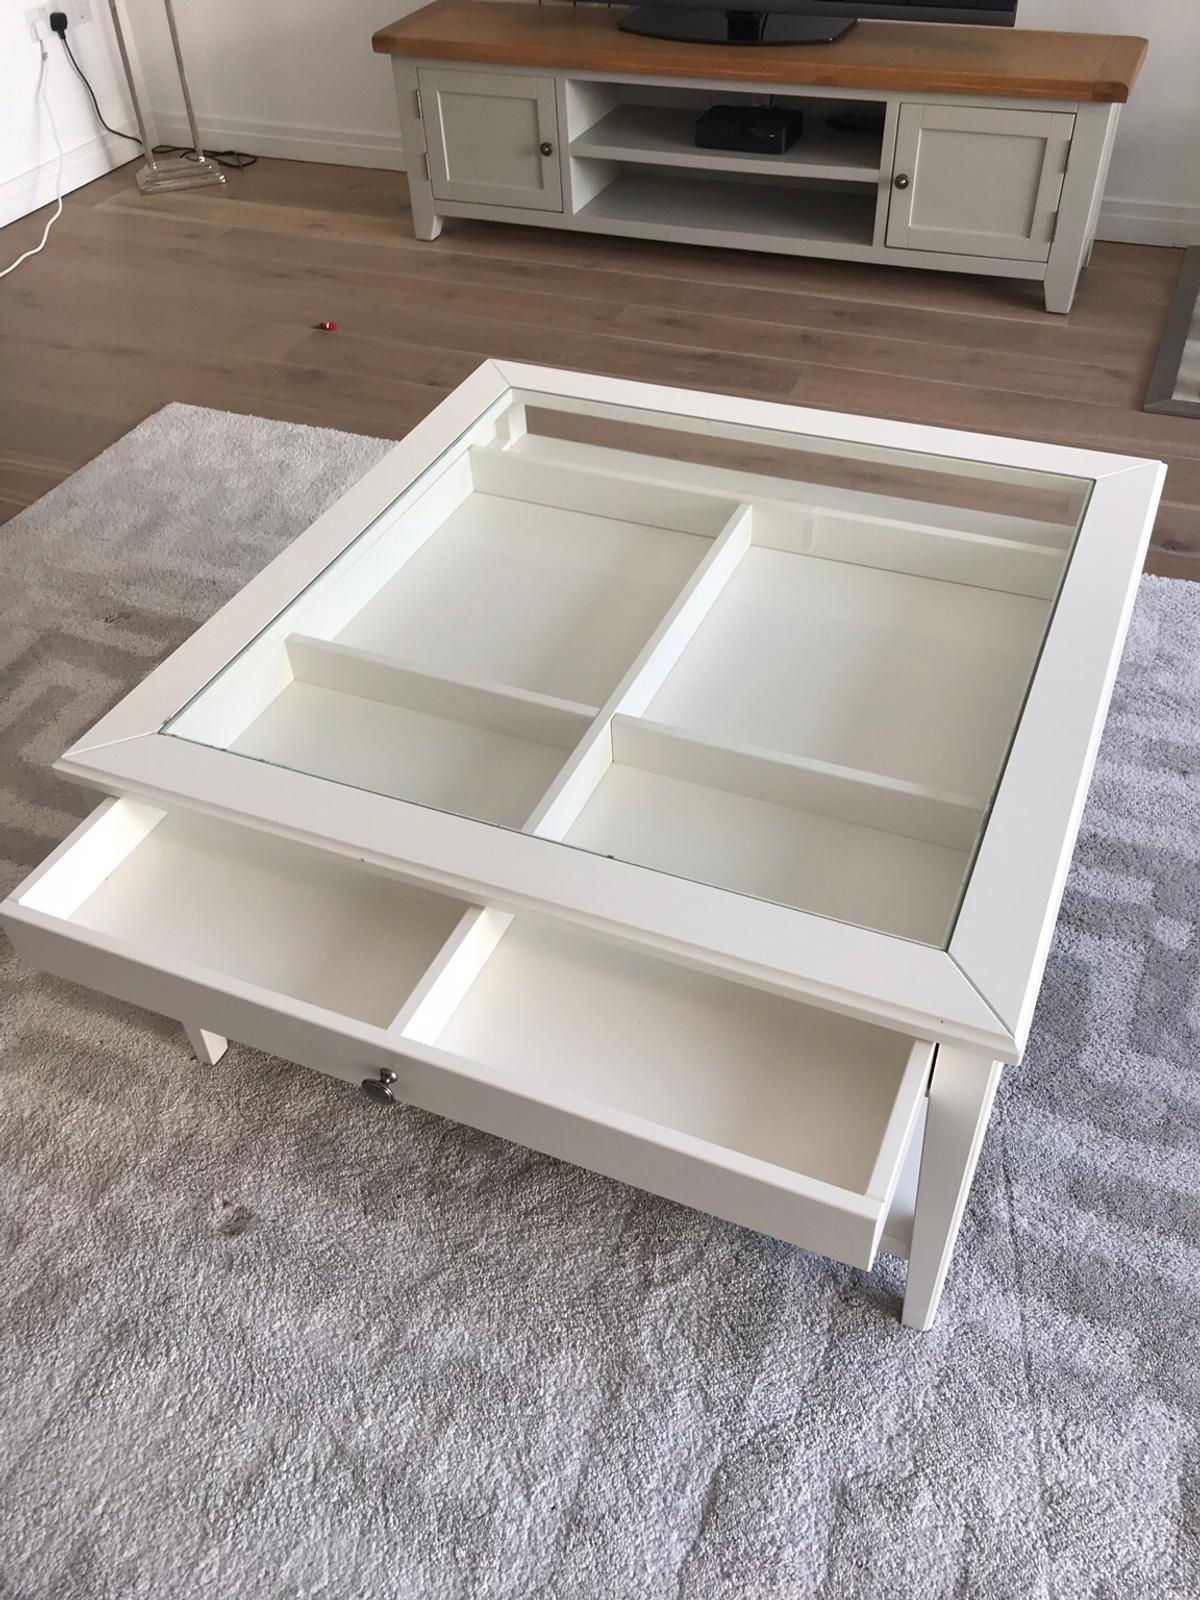 Ikea Liatorp Coffee Table In Uttlesford For 40 00 For Sale Shpock